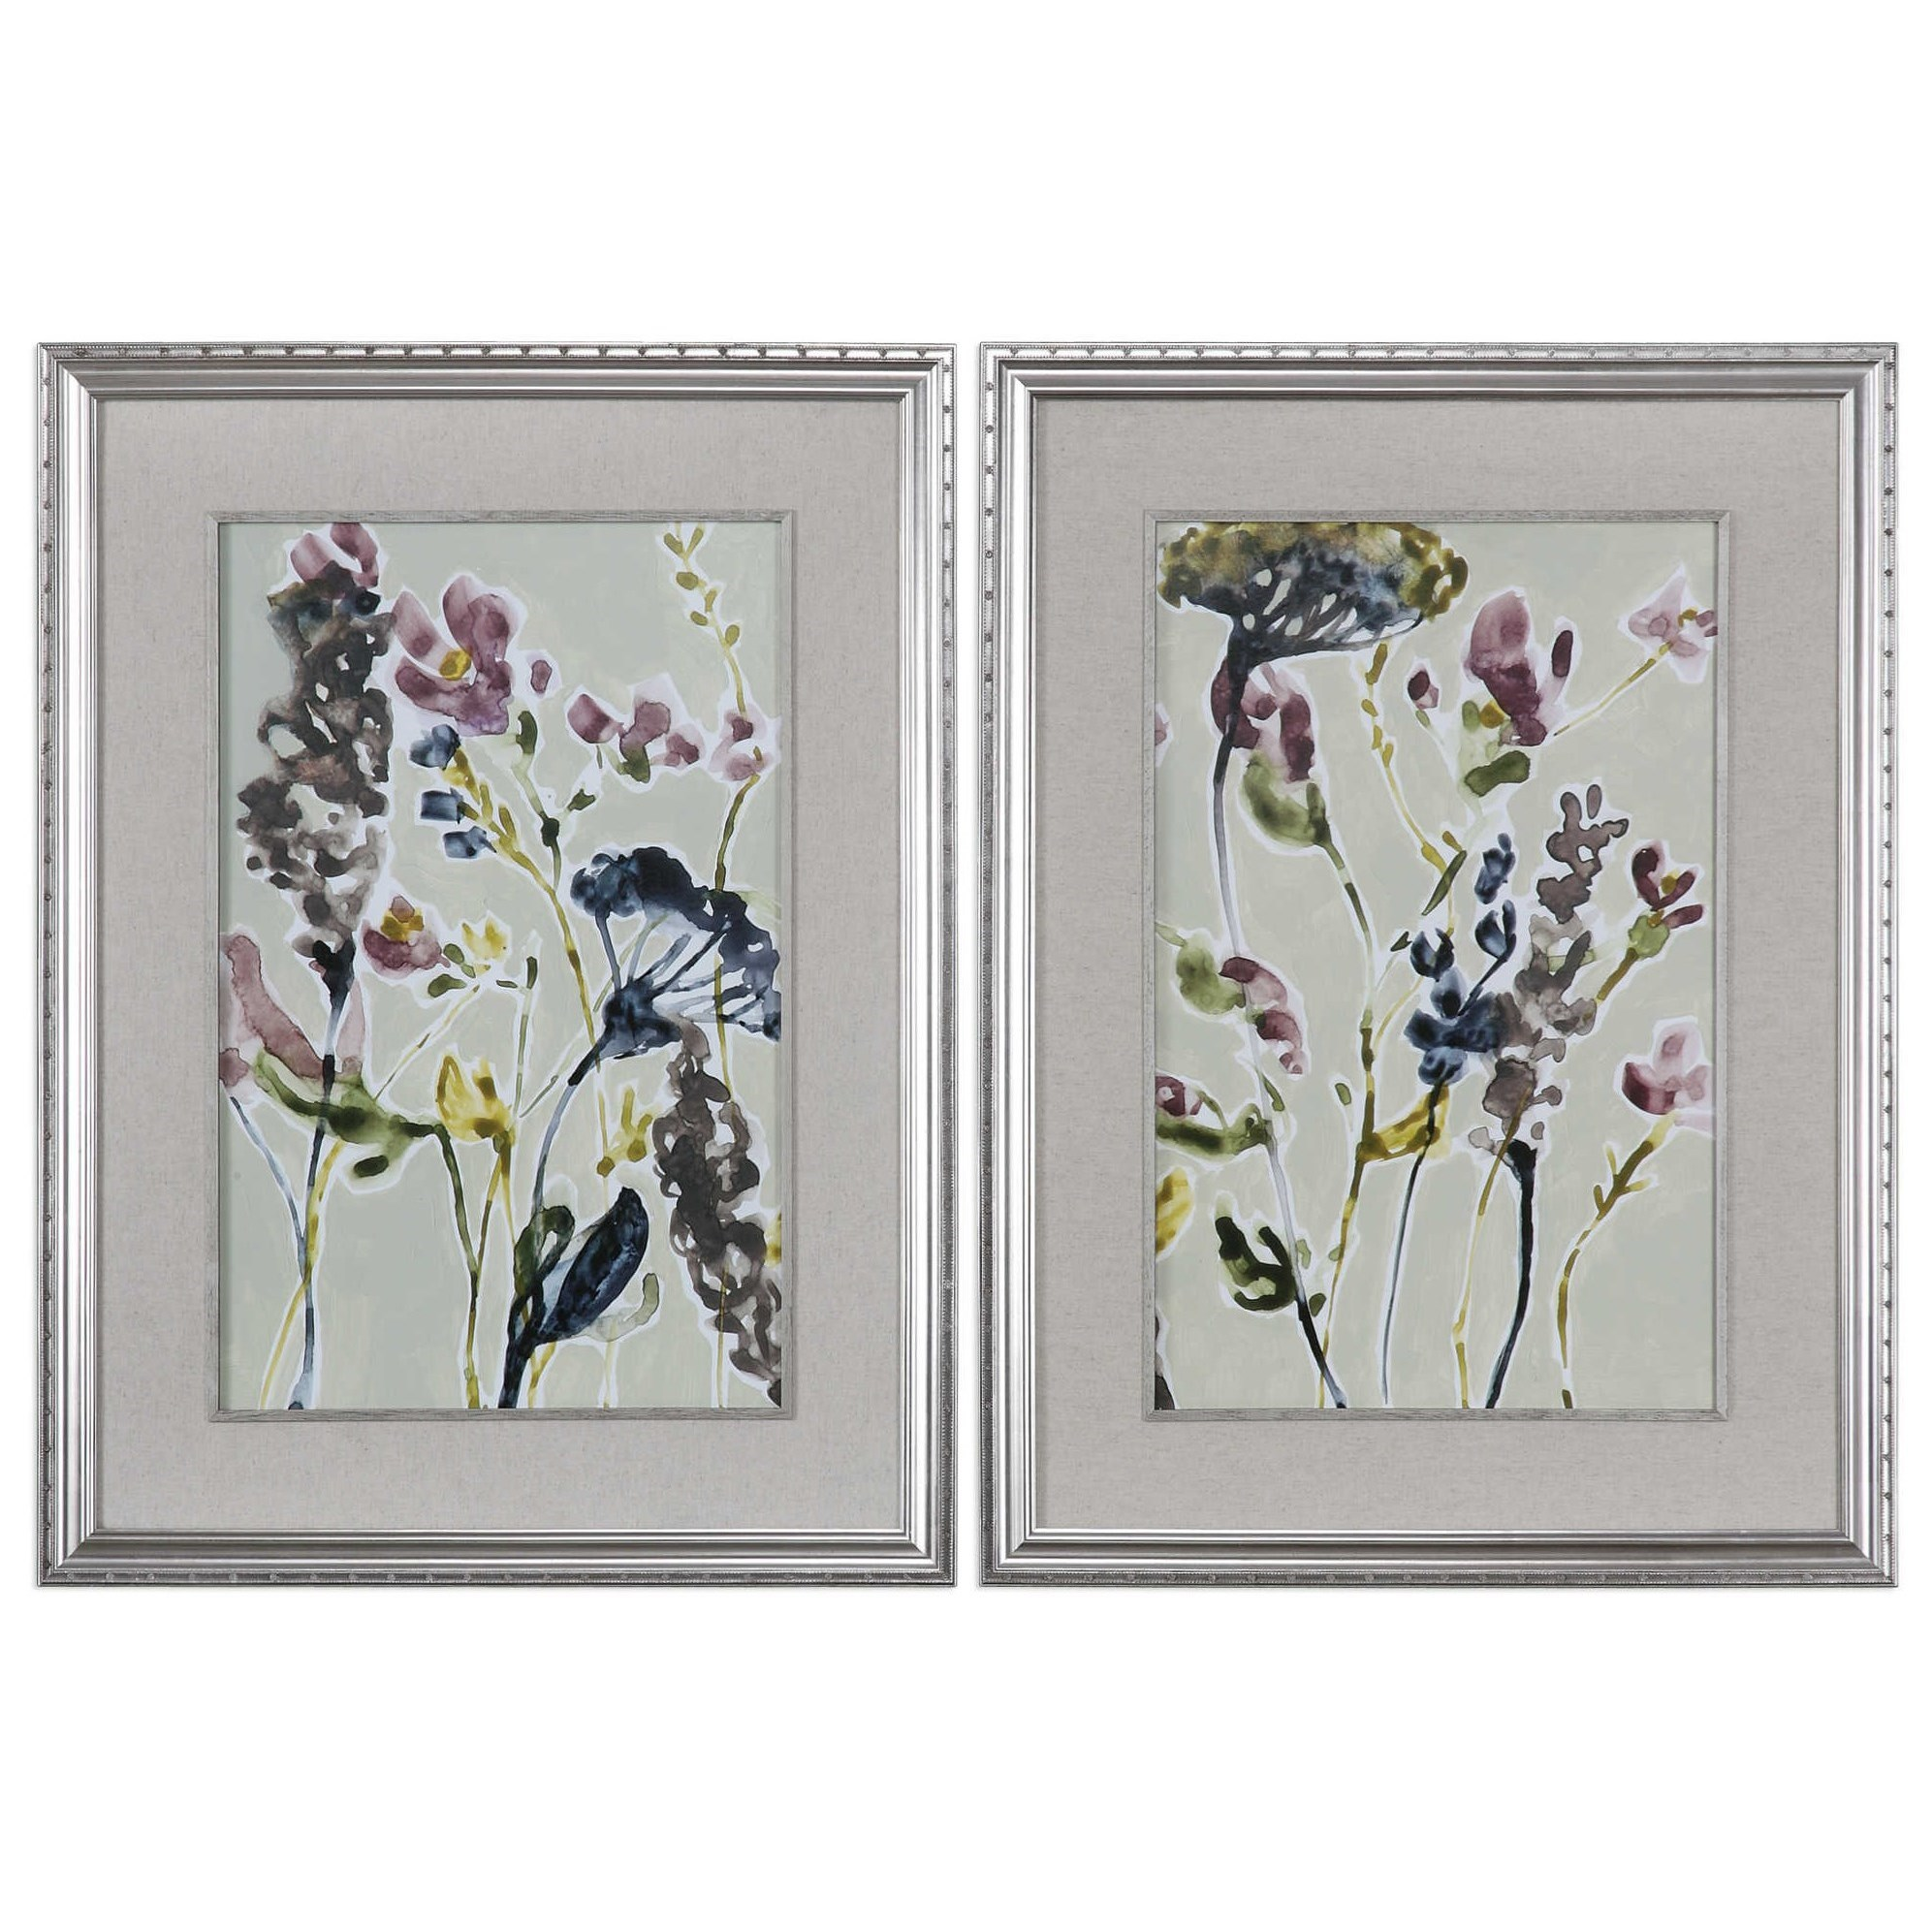 Parchment Flower Field Prints, Set of 2